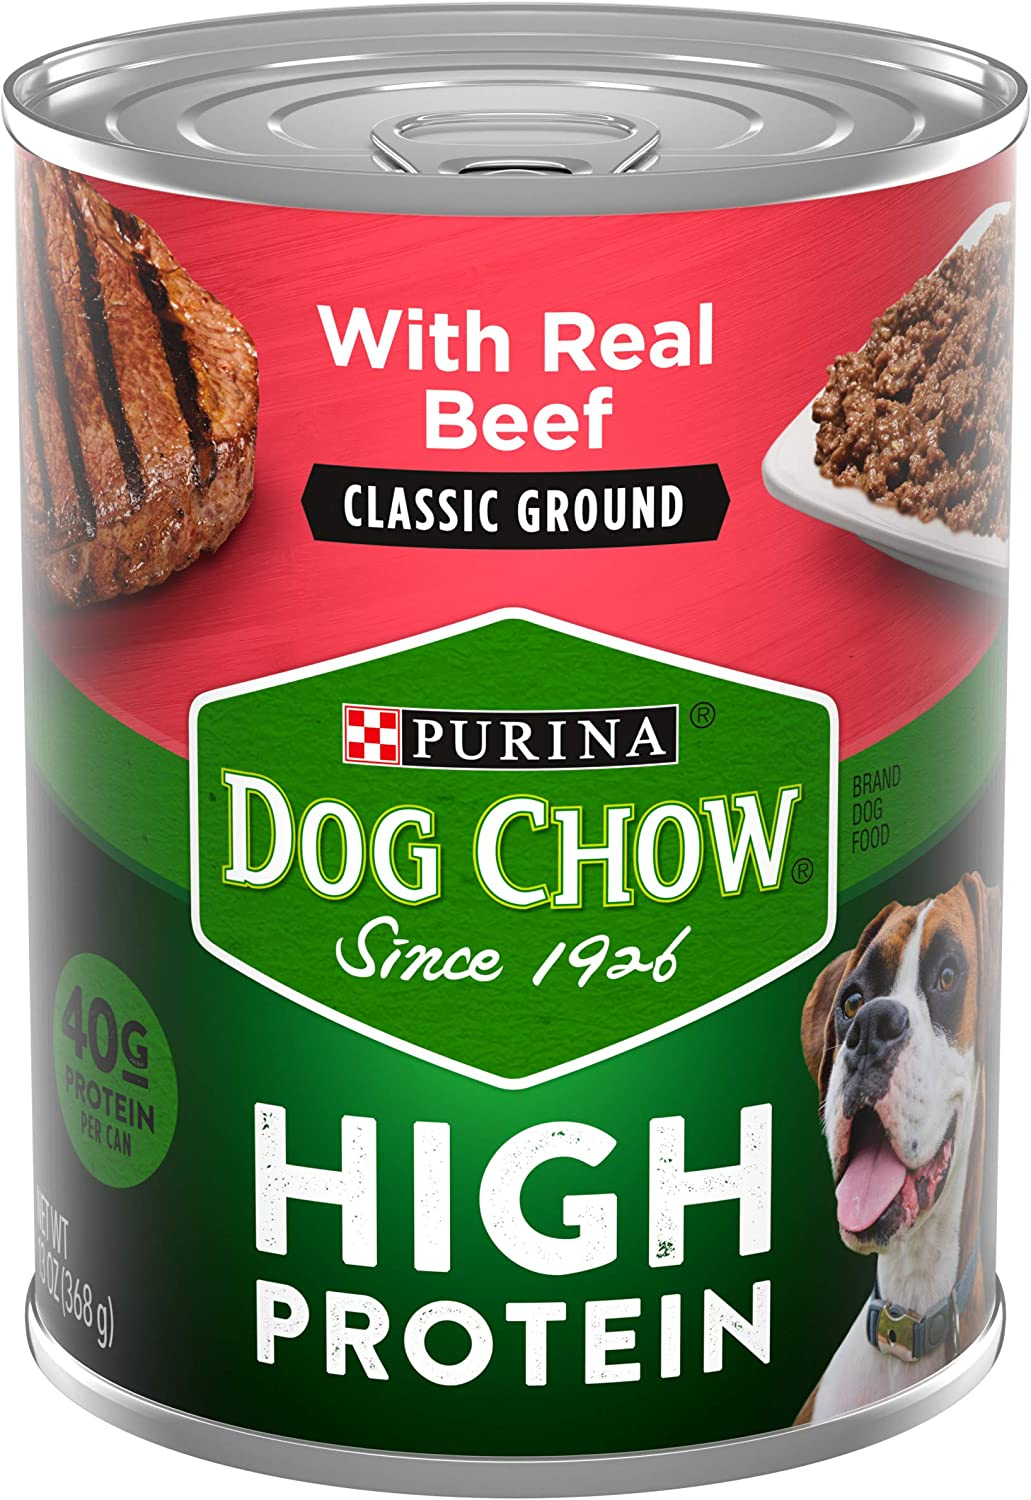 Purina Dog Chow High Protein Pate Wet Dog Food, High Protein With Real Beef - (12) 13 oz. Cans